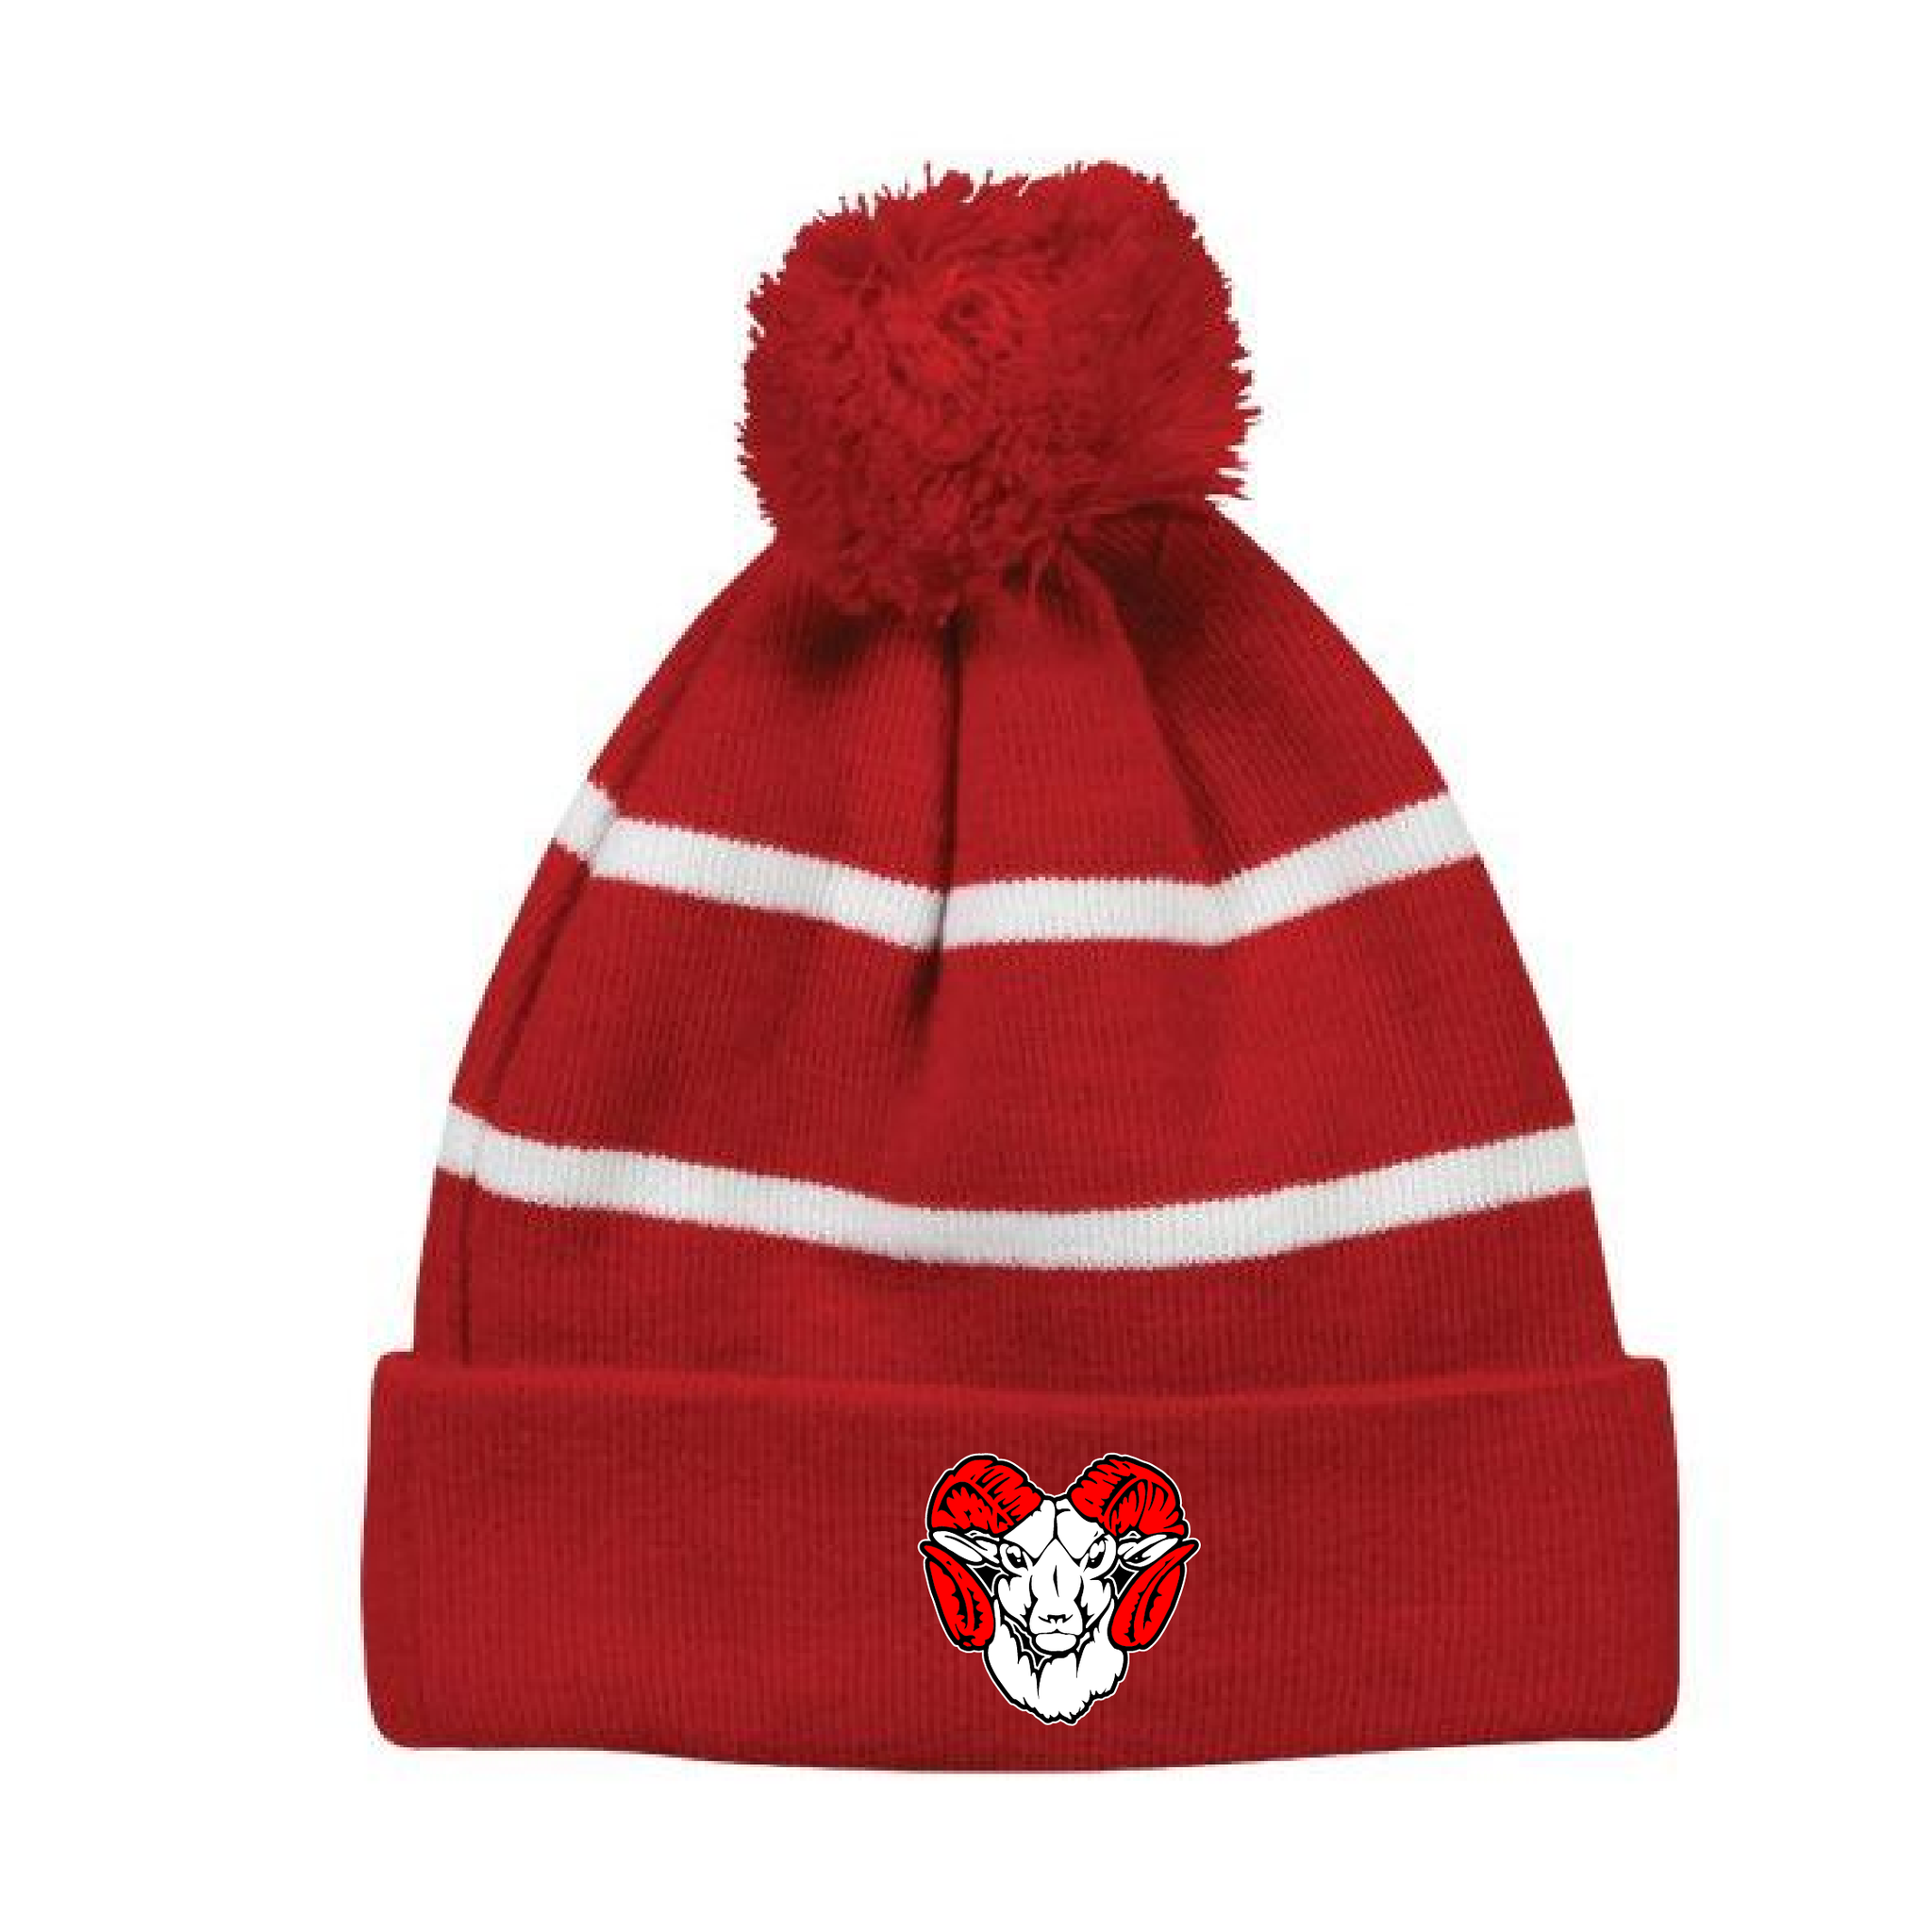 Trotwood Rams Knit Cap